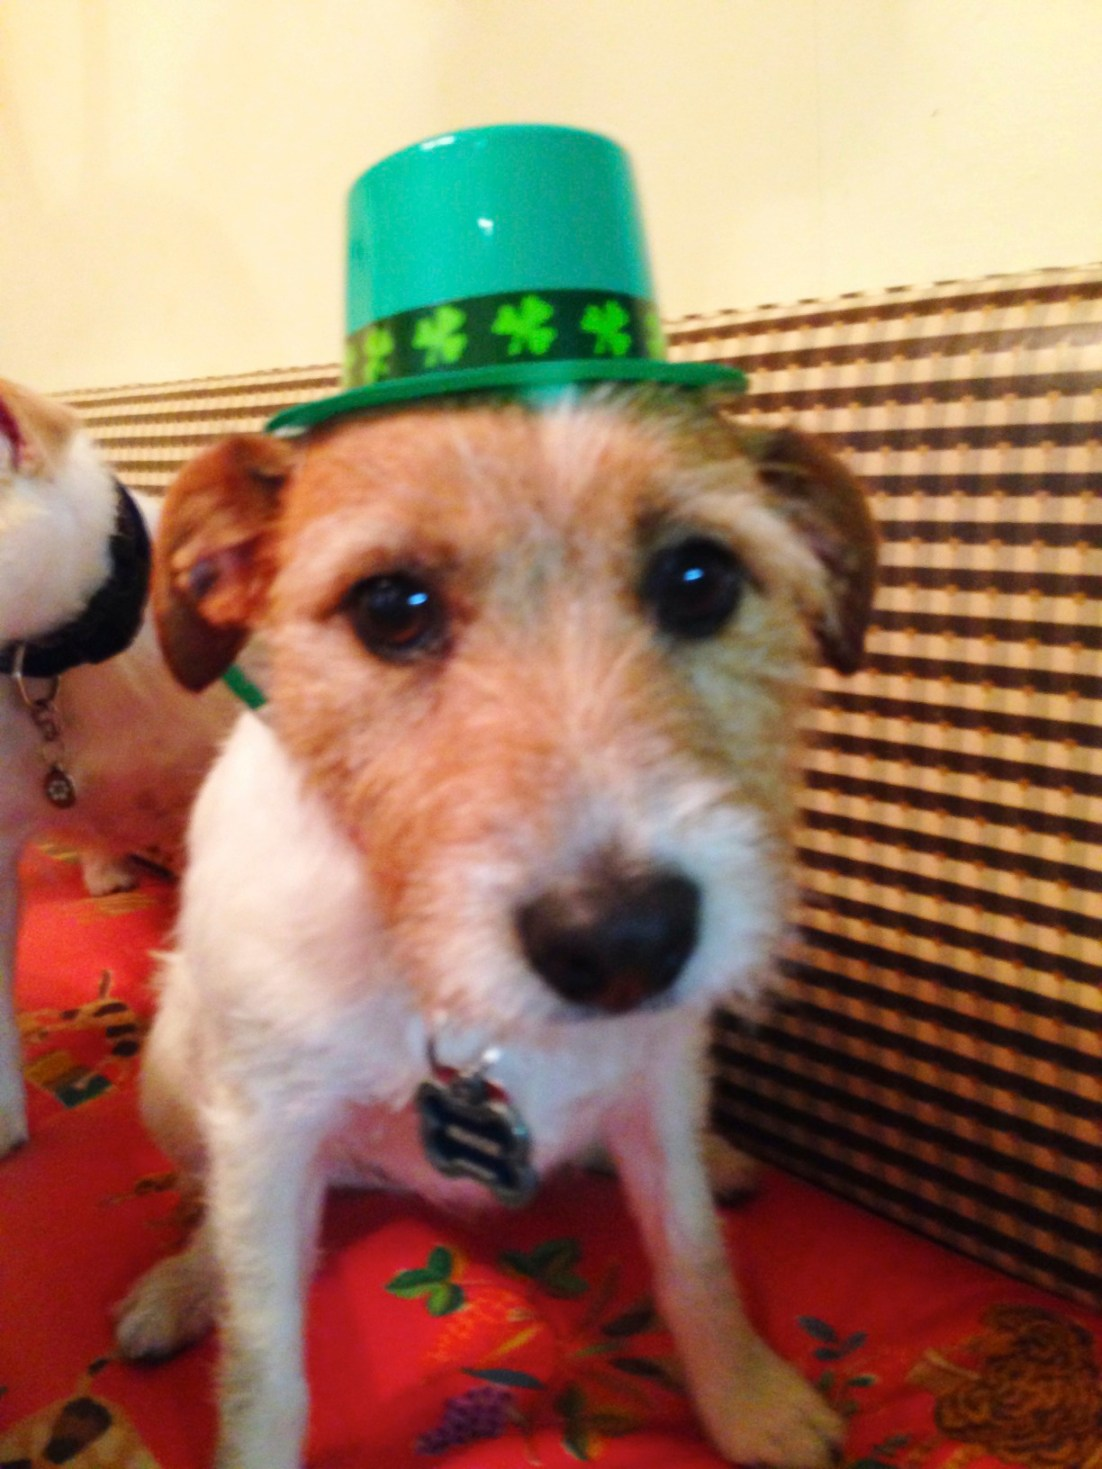 jack russell terrier wearing hat